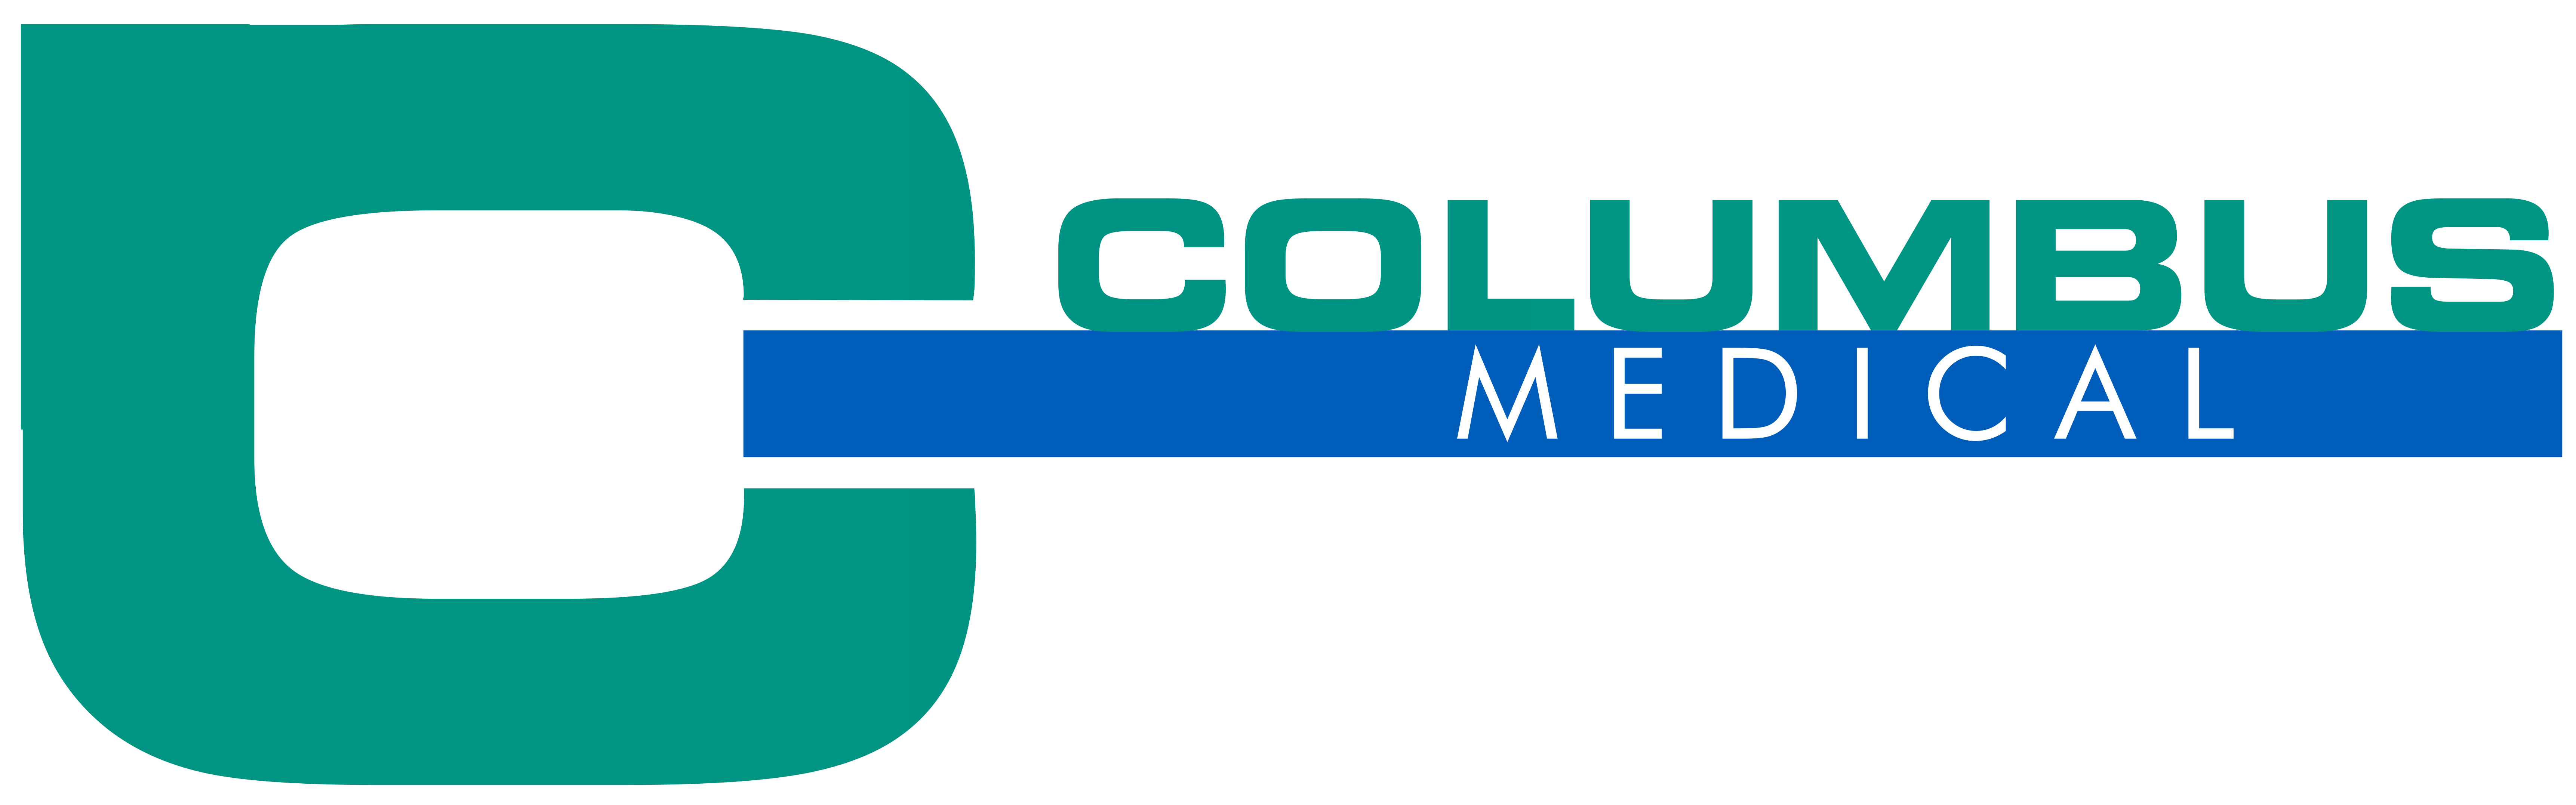 Columbusmedical.nl